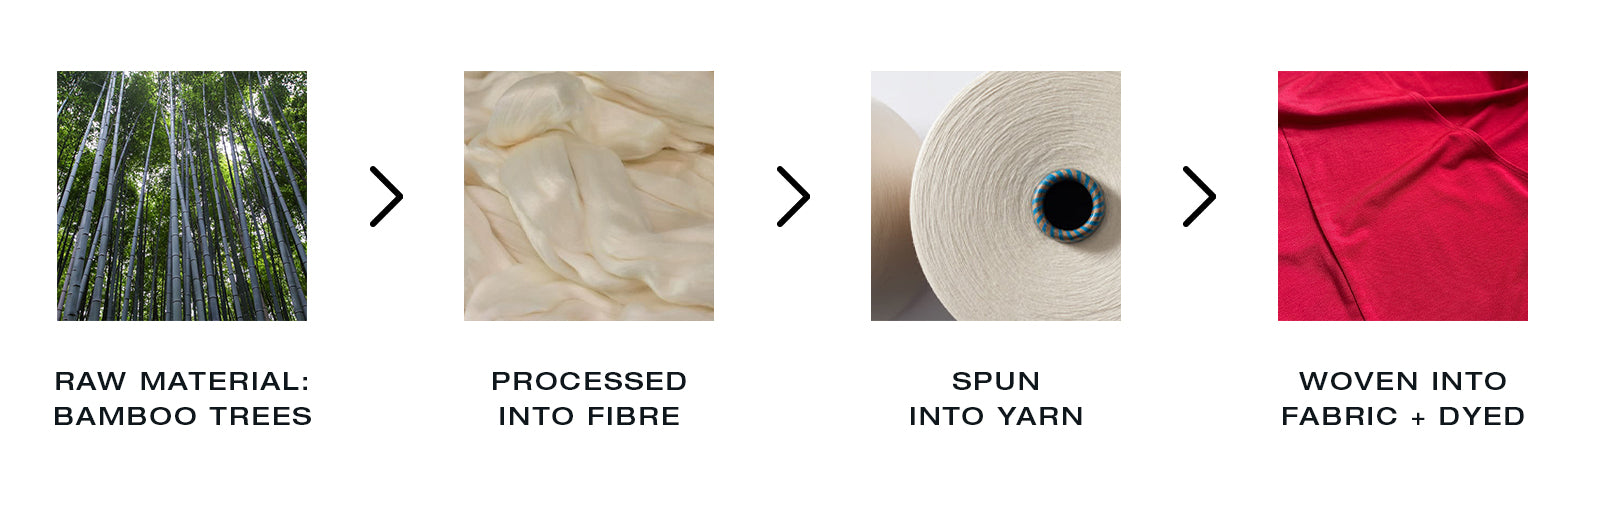 Infographic showing the stages of bamboo fabric production